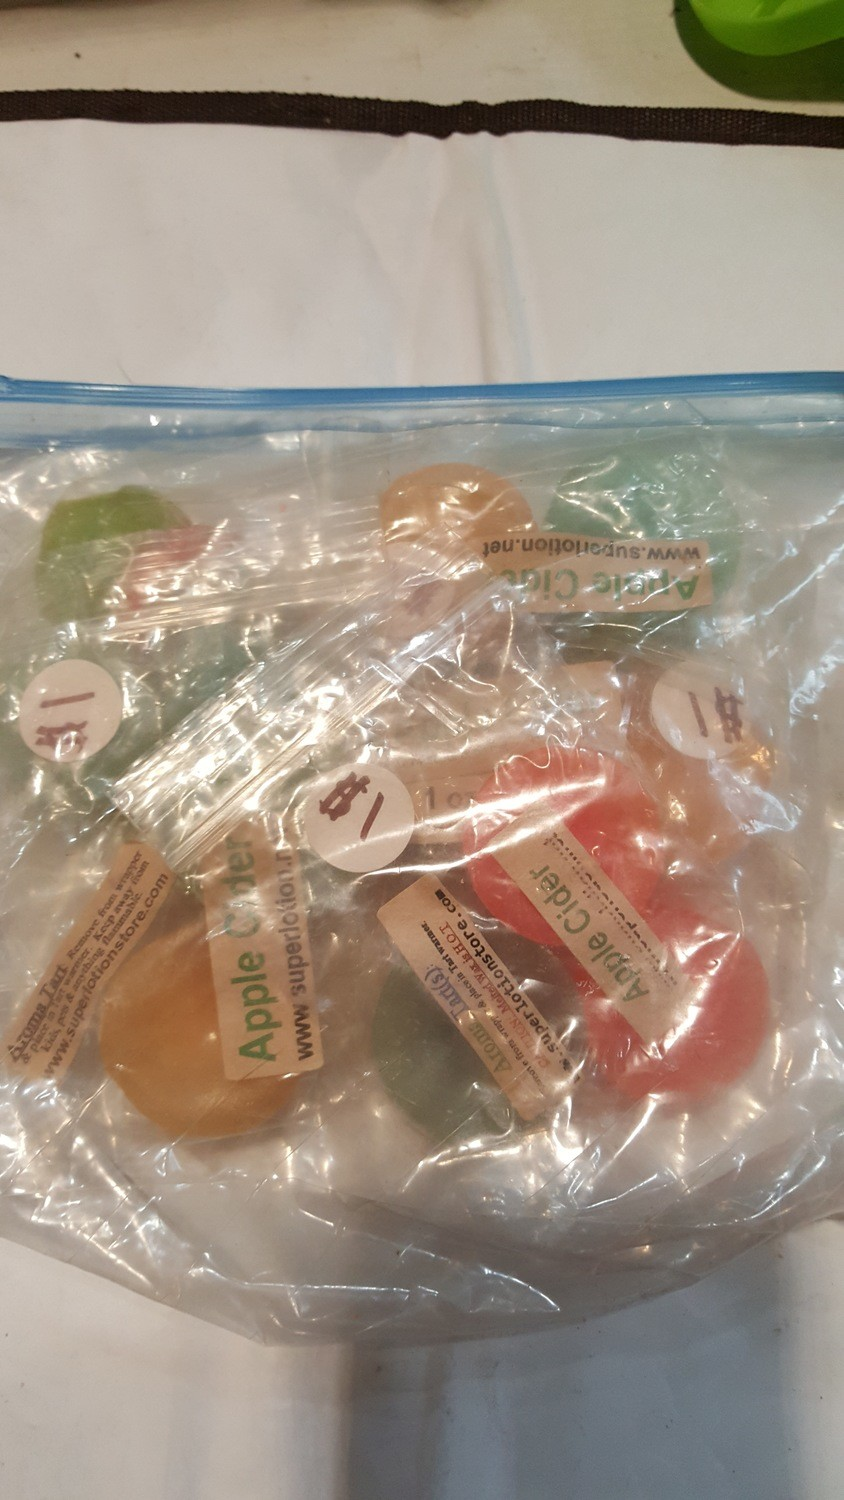 wax melts - apple pie and apple cider